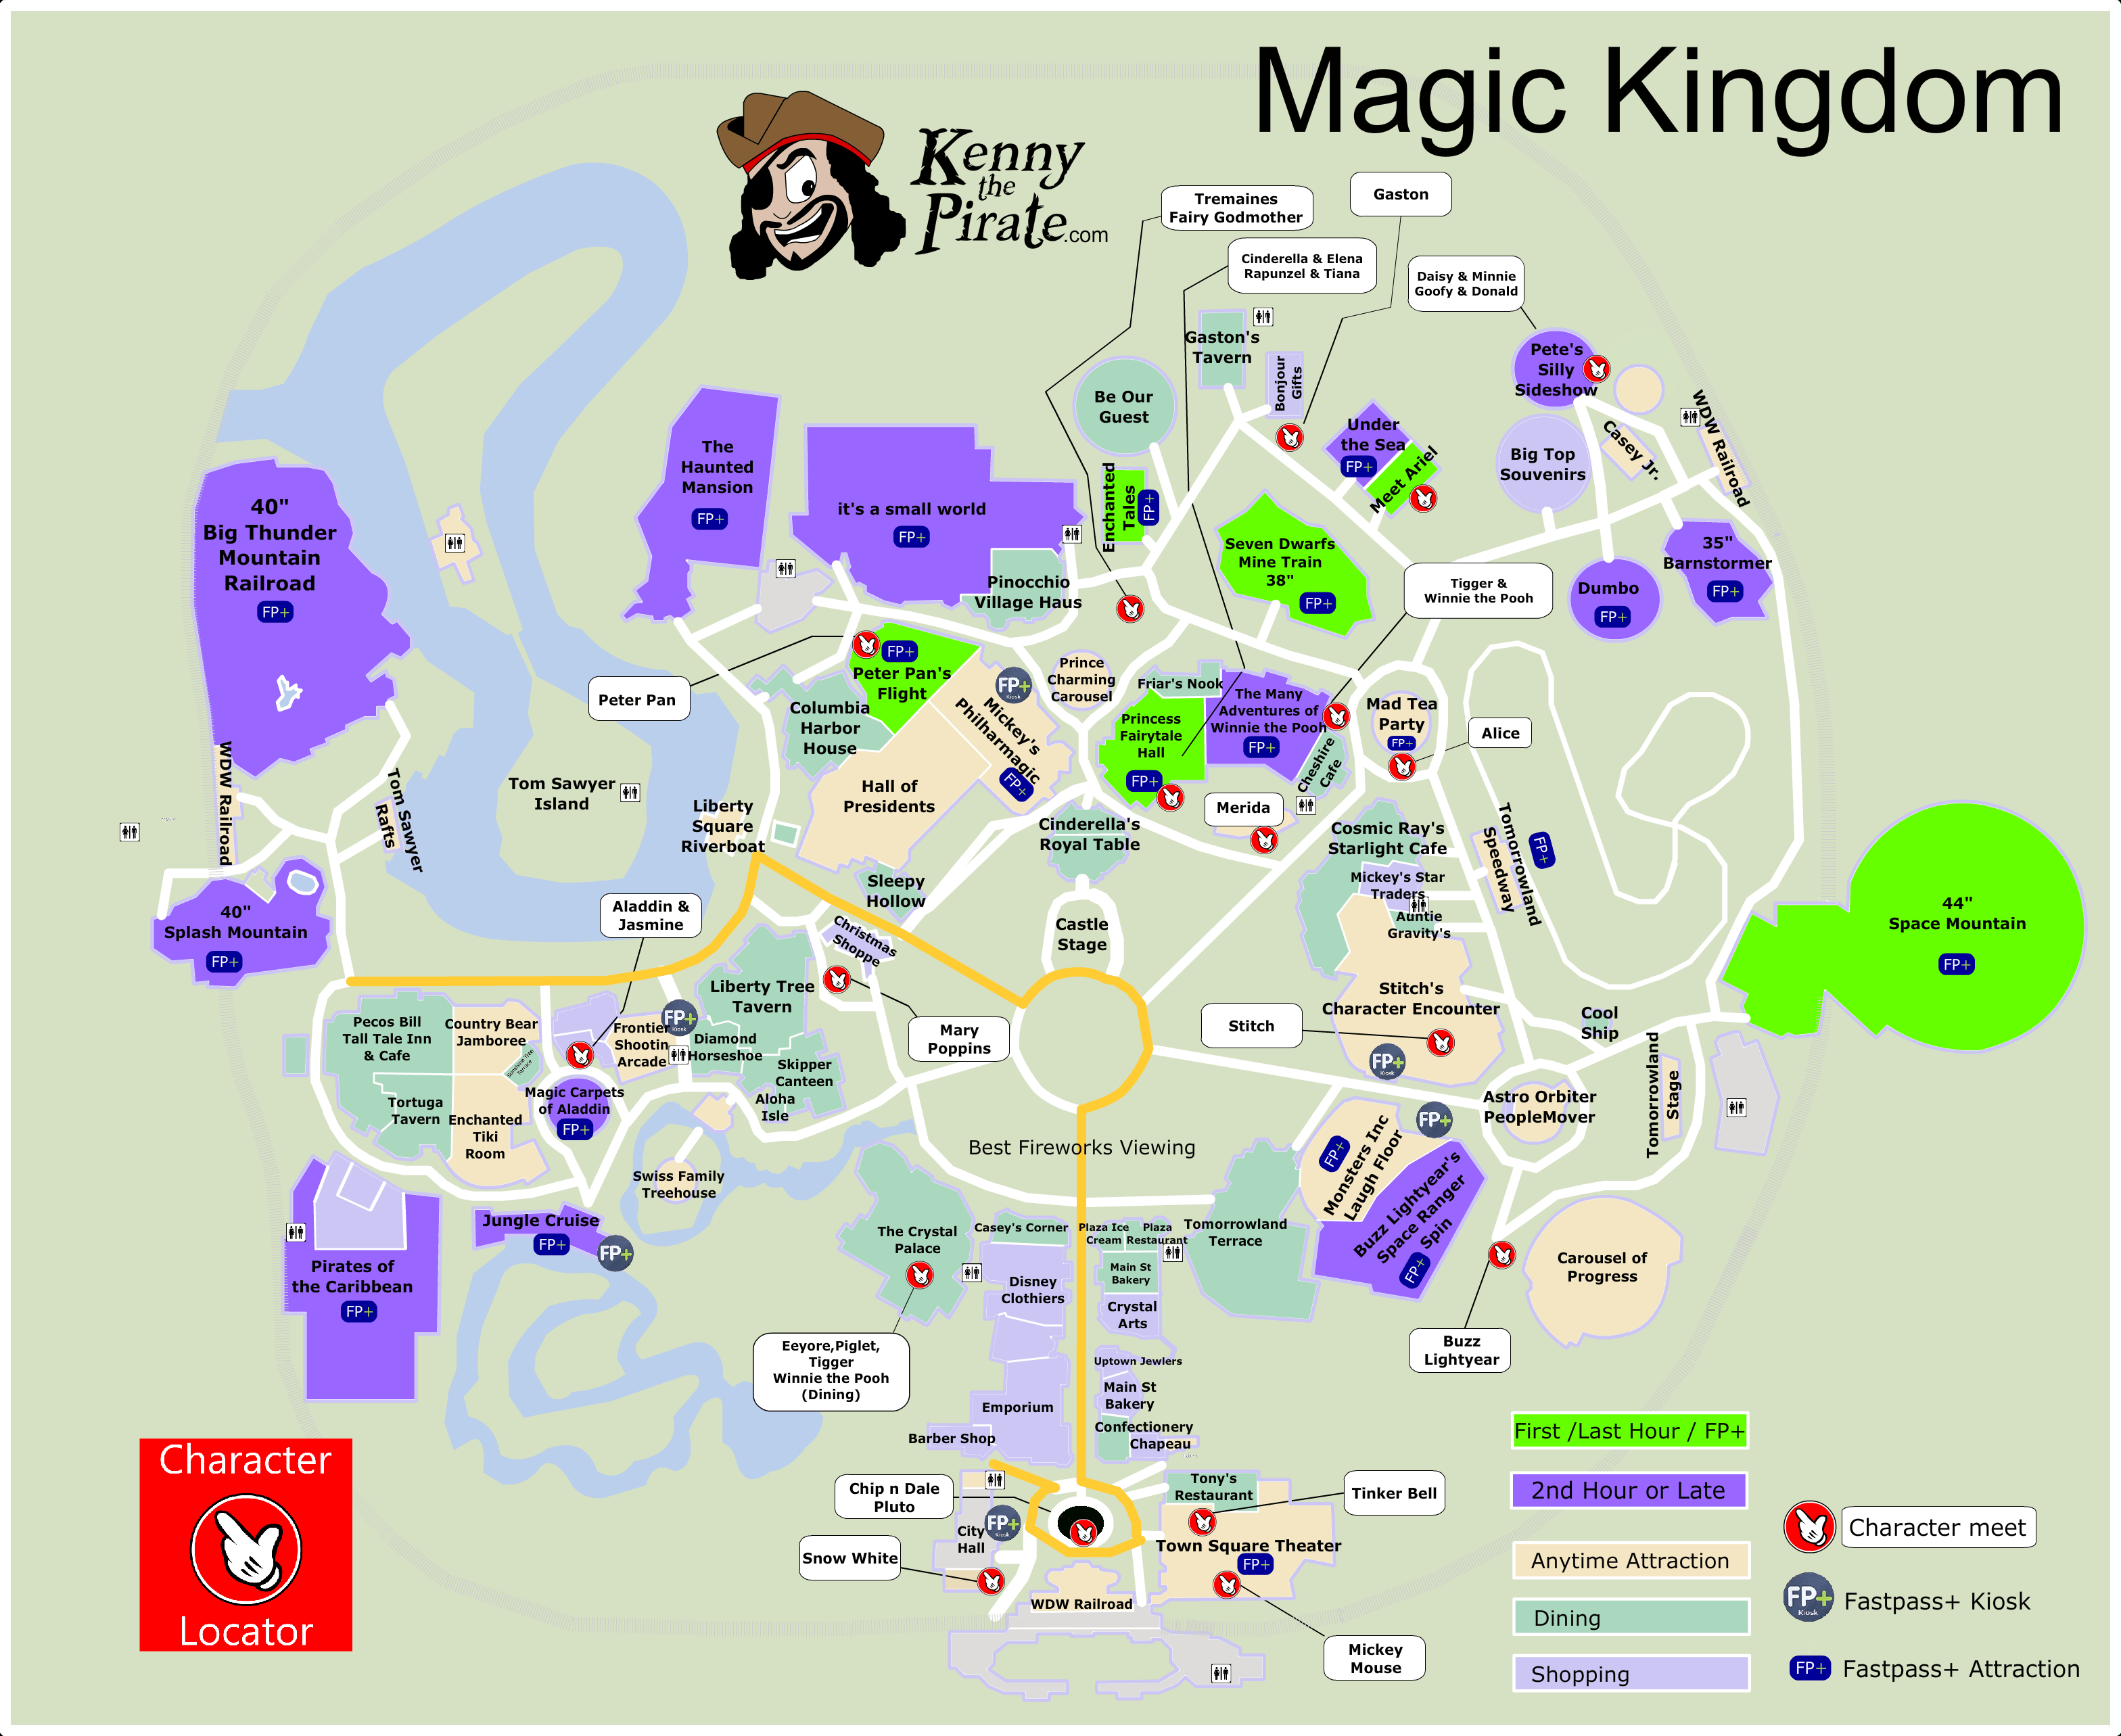 Disney World Magic Kingdom Map - Sportpicks - Magic Kingdom Orlando Florida Map